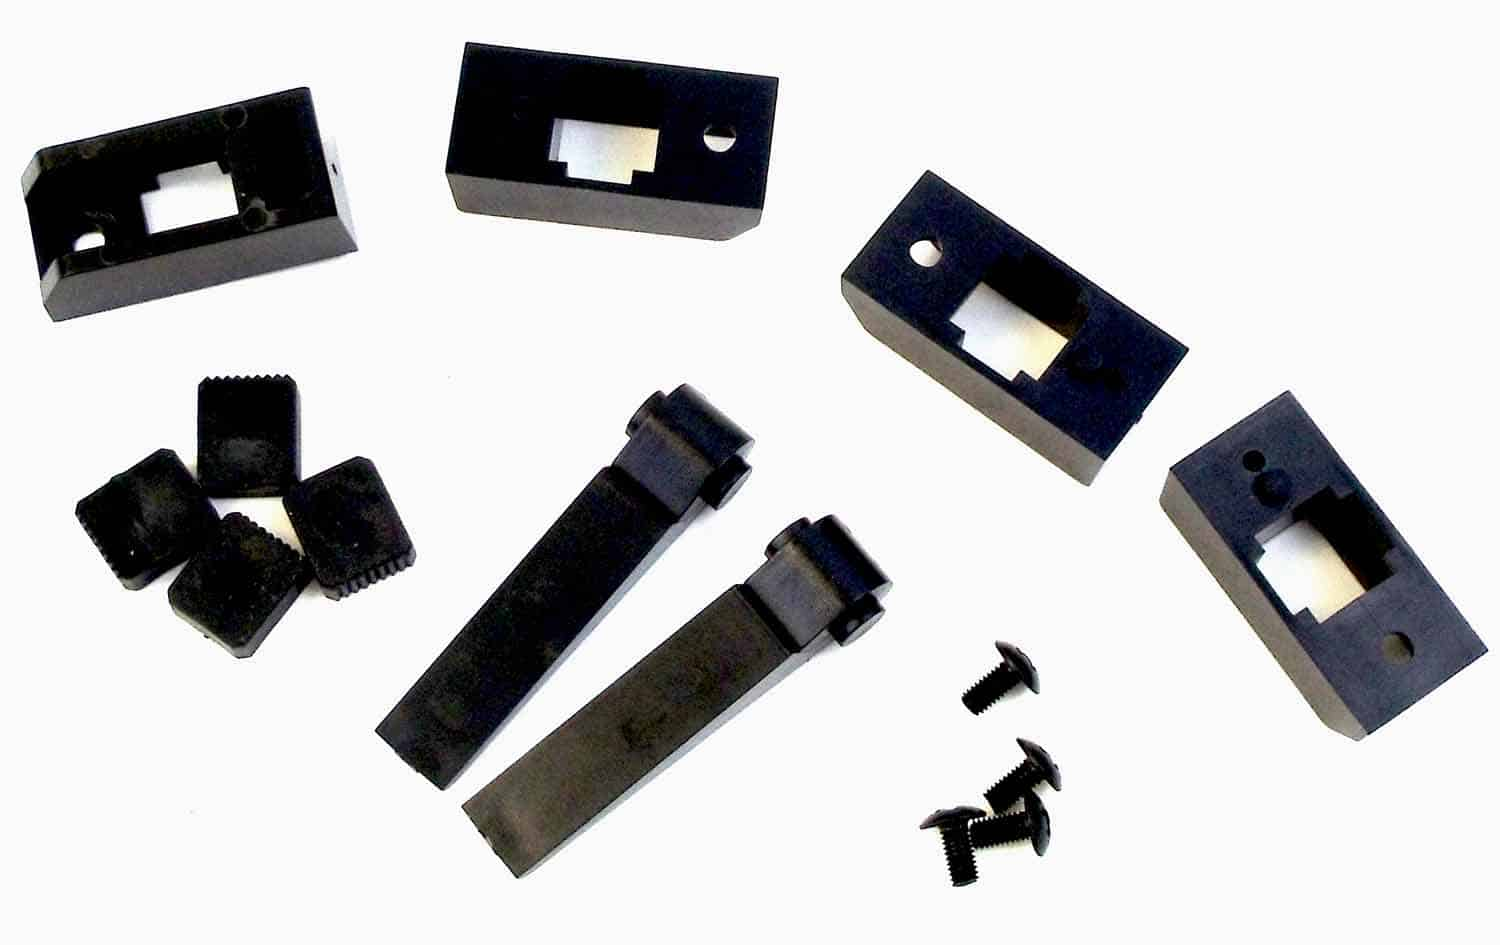 DXFEETSET2547 - Galaxy Replacement Feet Set For The Dx2547 (4 Pcs)